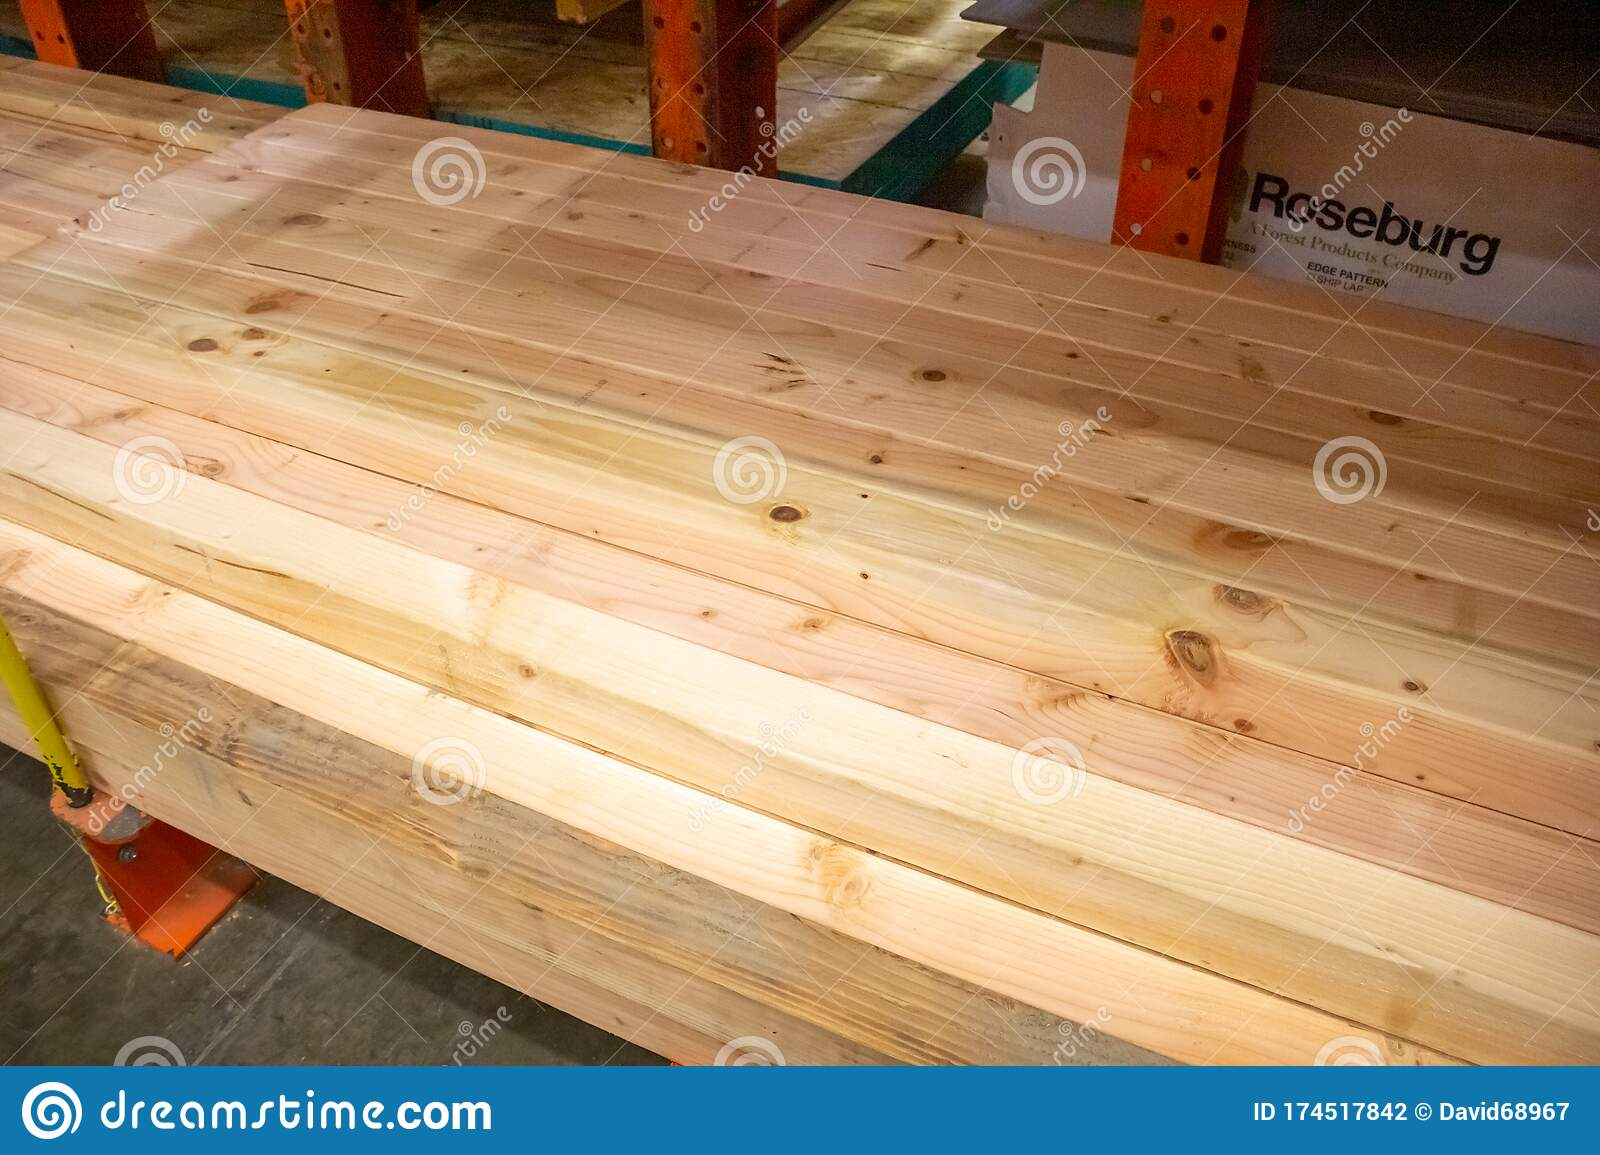 Wood Lumber Editorial Photography Image Of Hard Tools 174517842